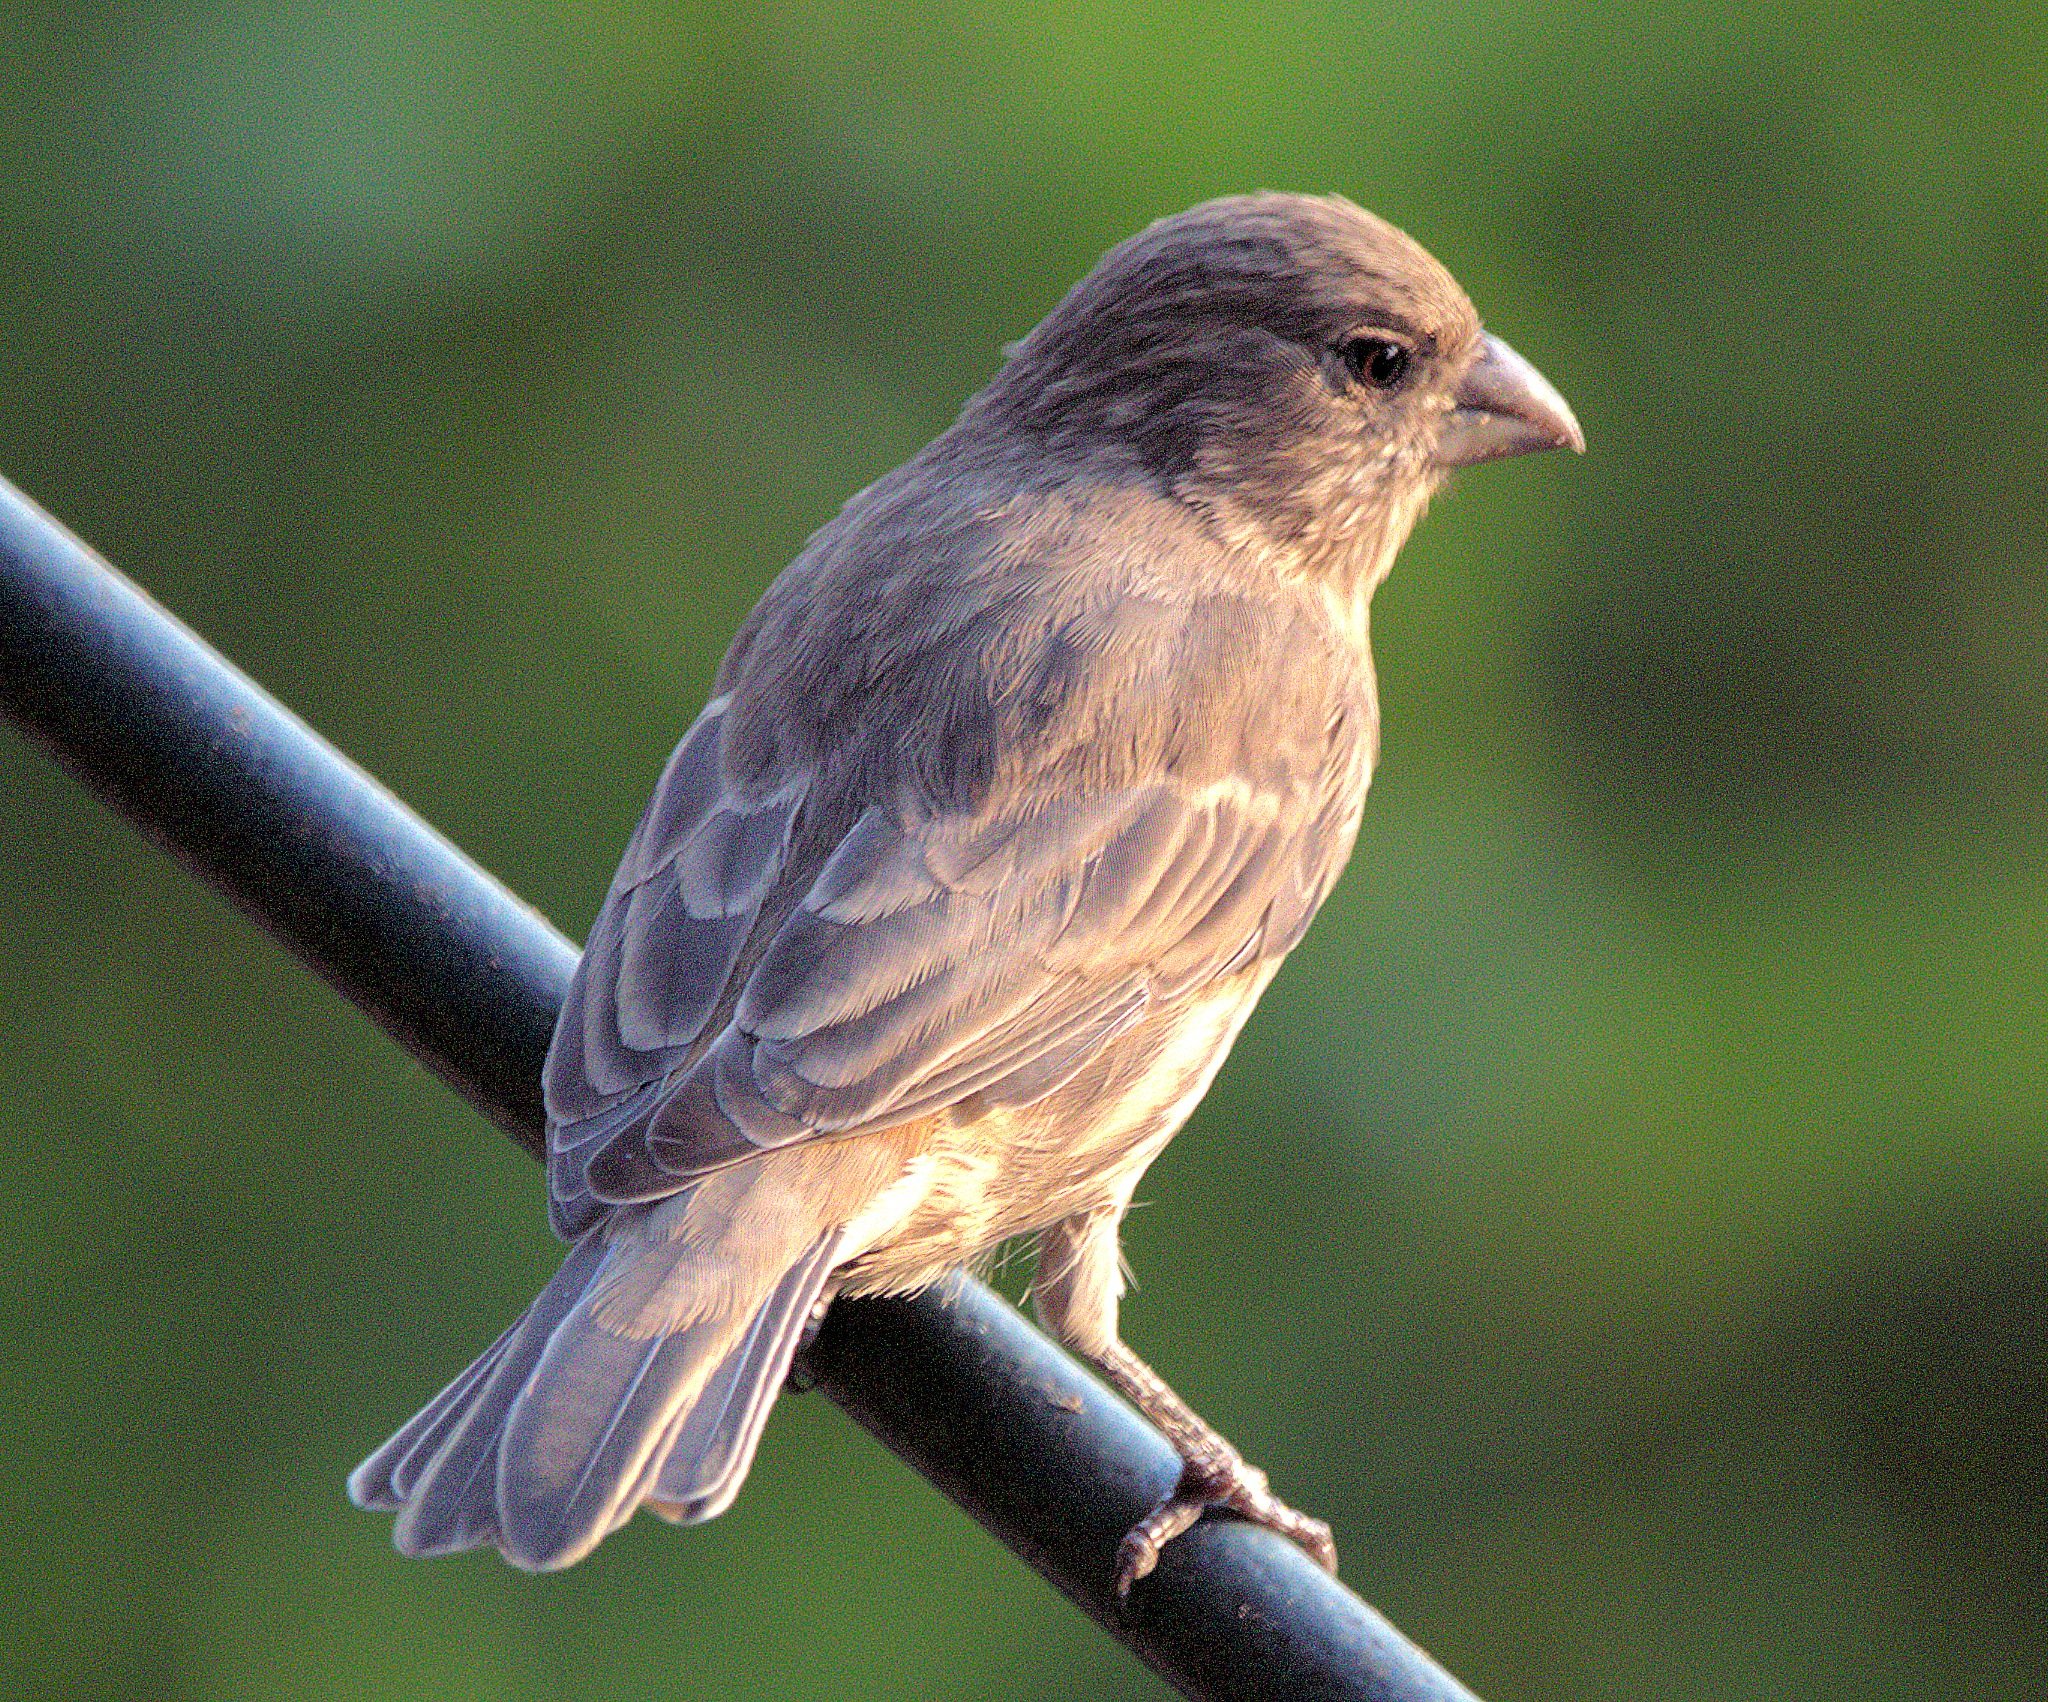 Perched Finch by Robert Atkinson